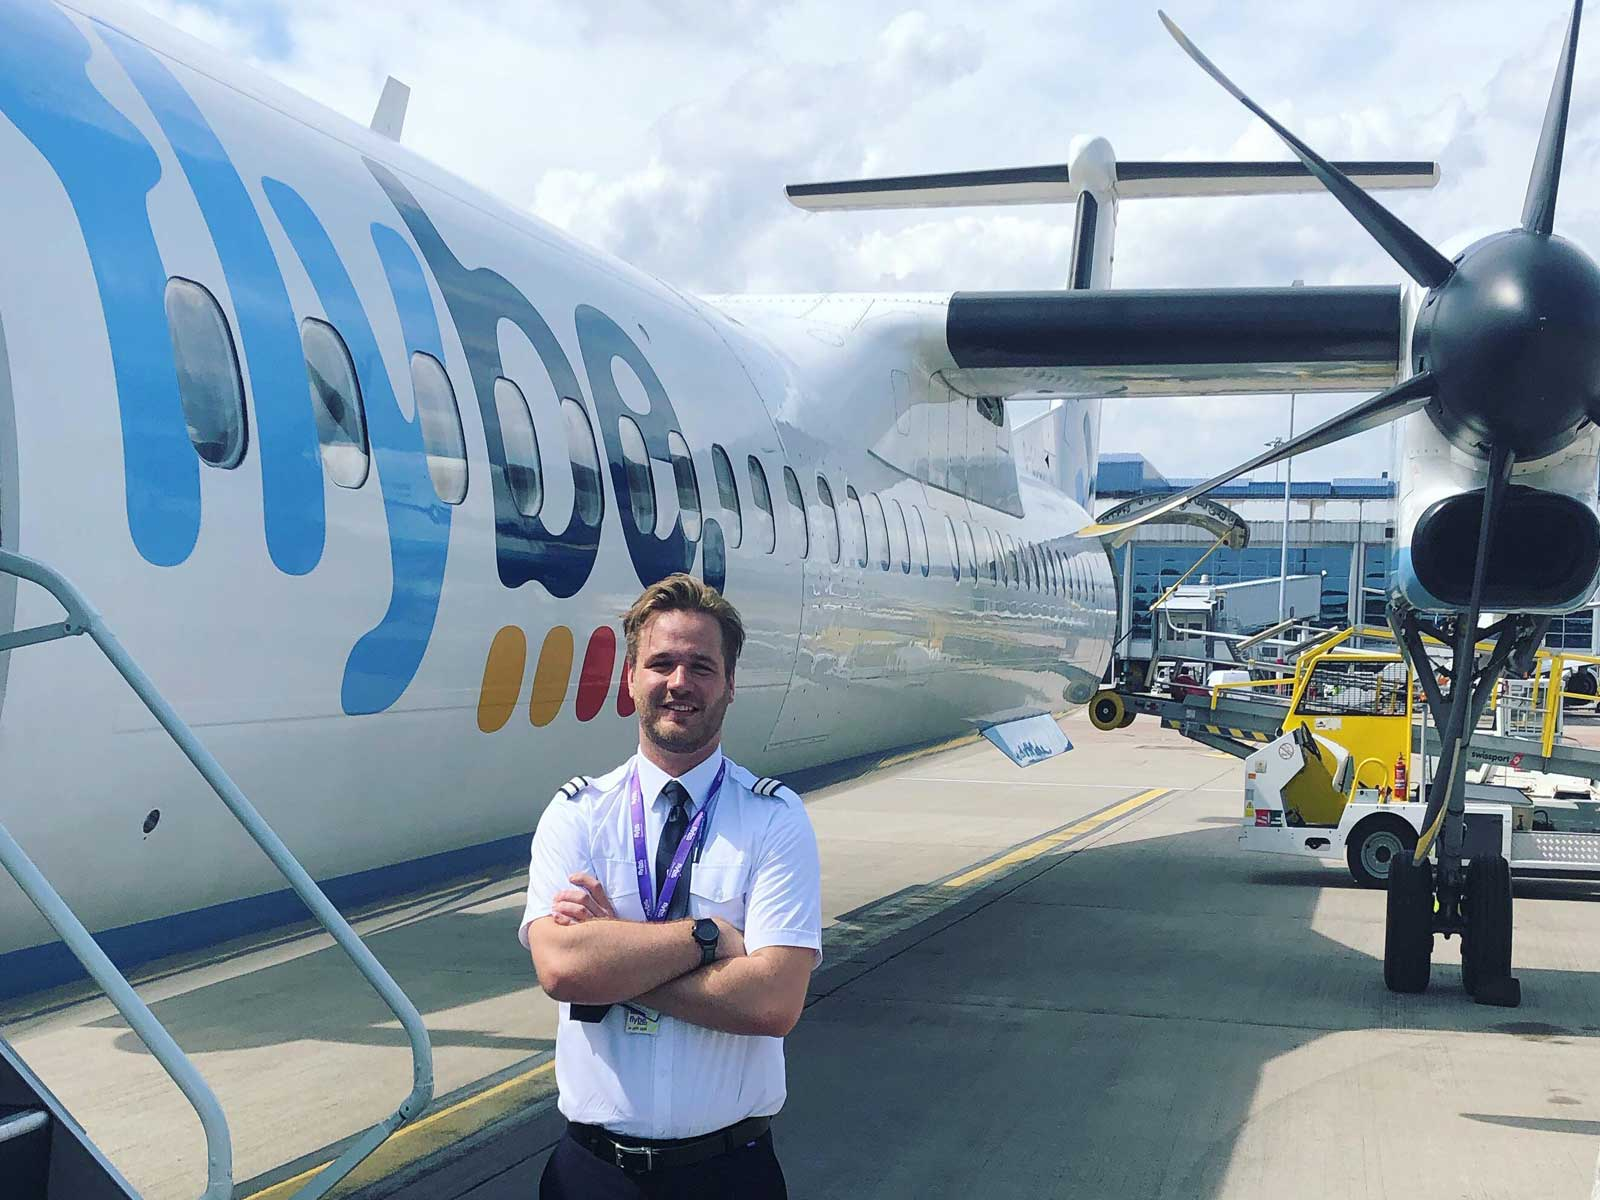 Flybe-Toby-Content-Card